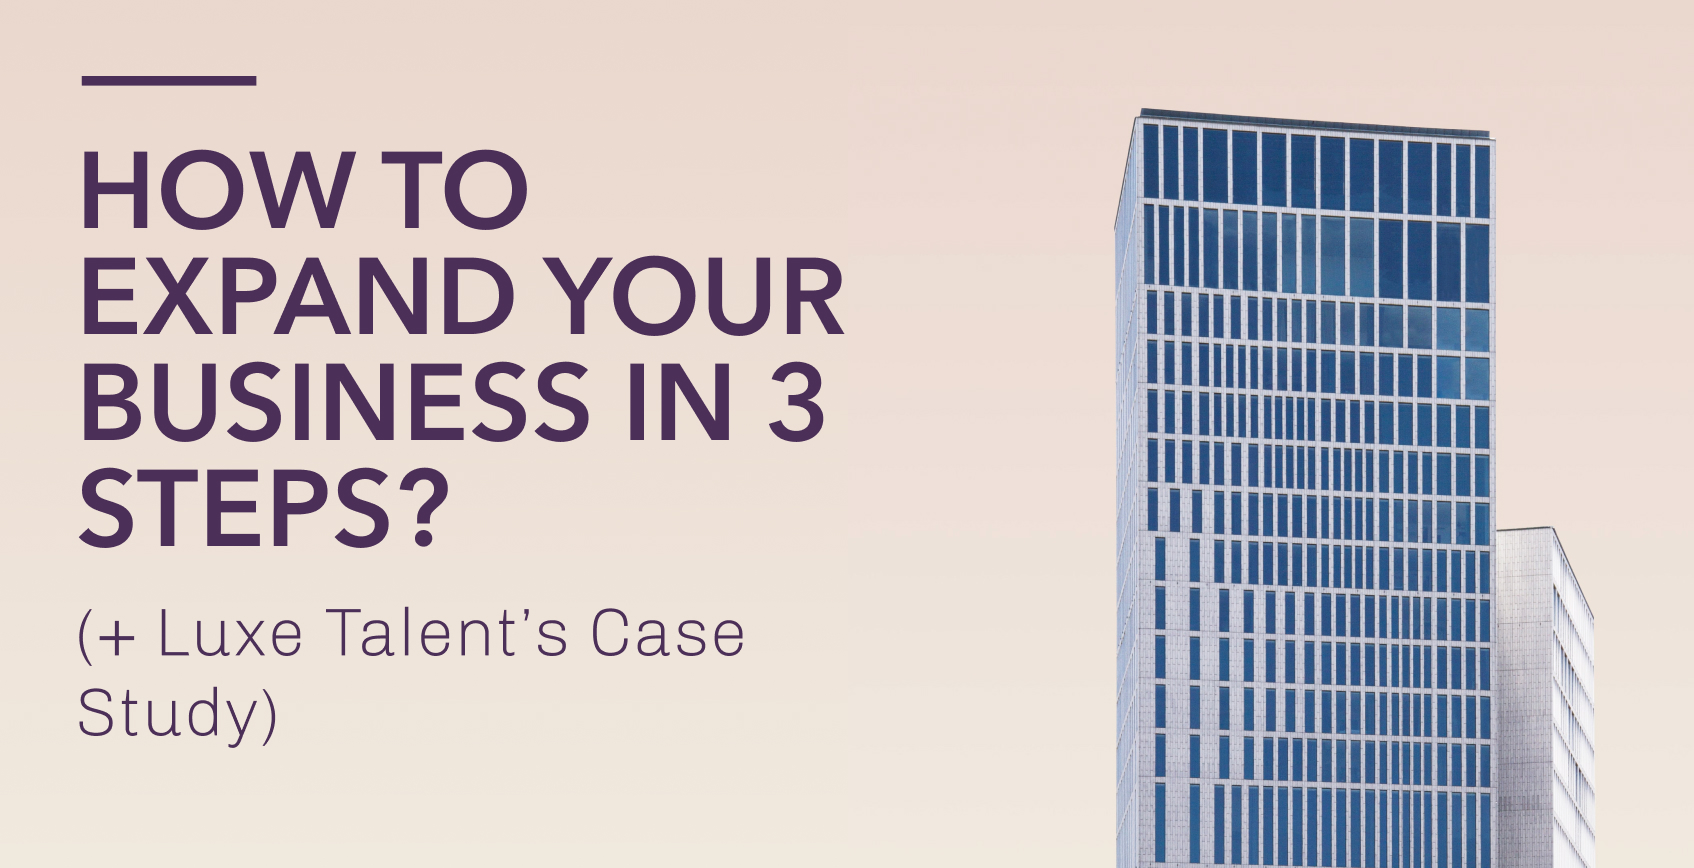 How to expand your business in 3 steps? (+ Luxe Talent's Case Study)